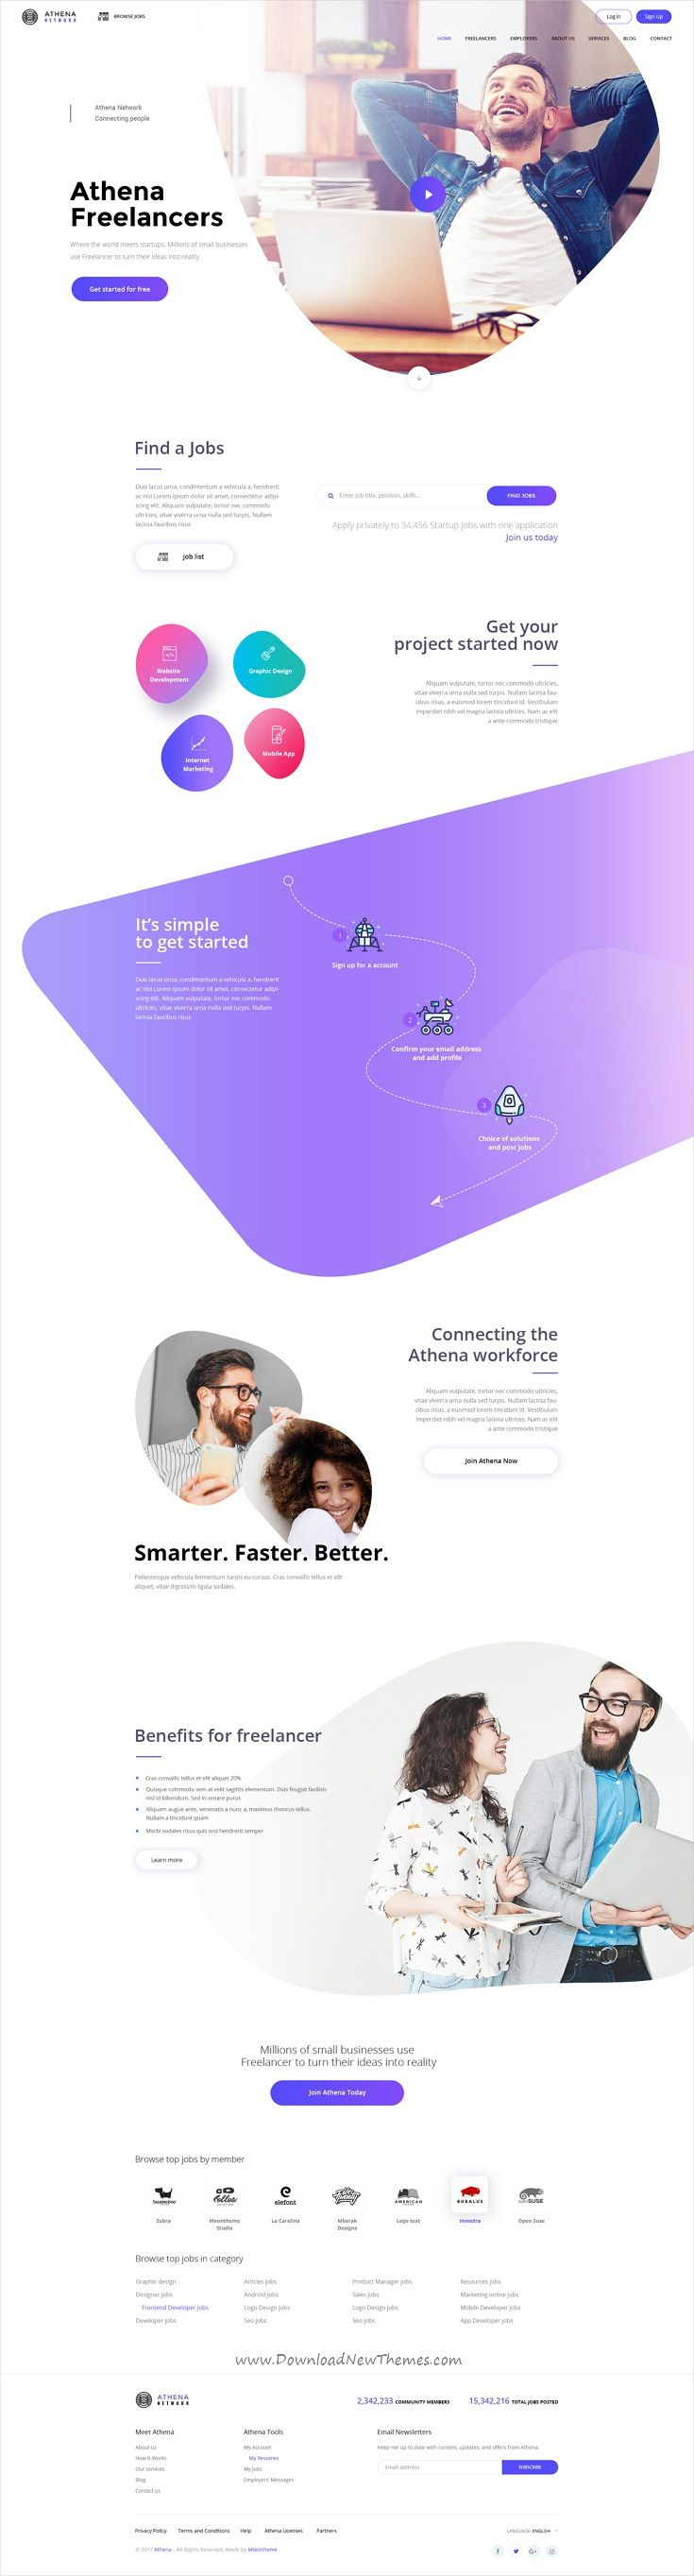 Athena is clean and modern #design PSD template for Freelancer and #Employers Jobs #Search website with 44 layered PSD pages download now..